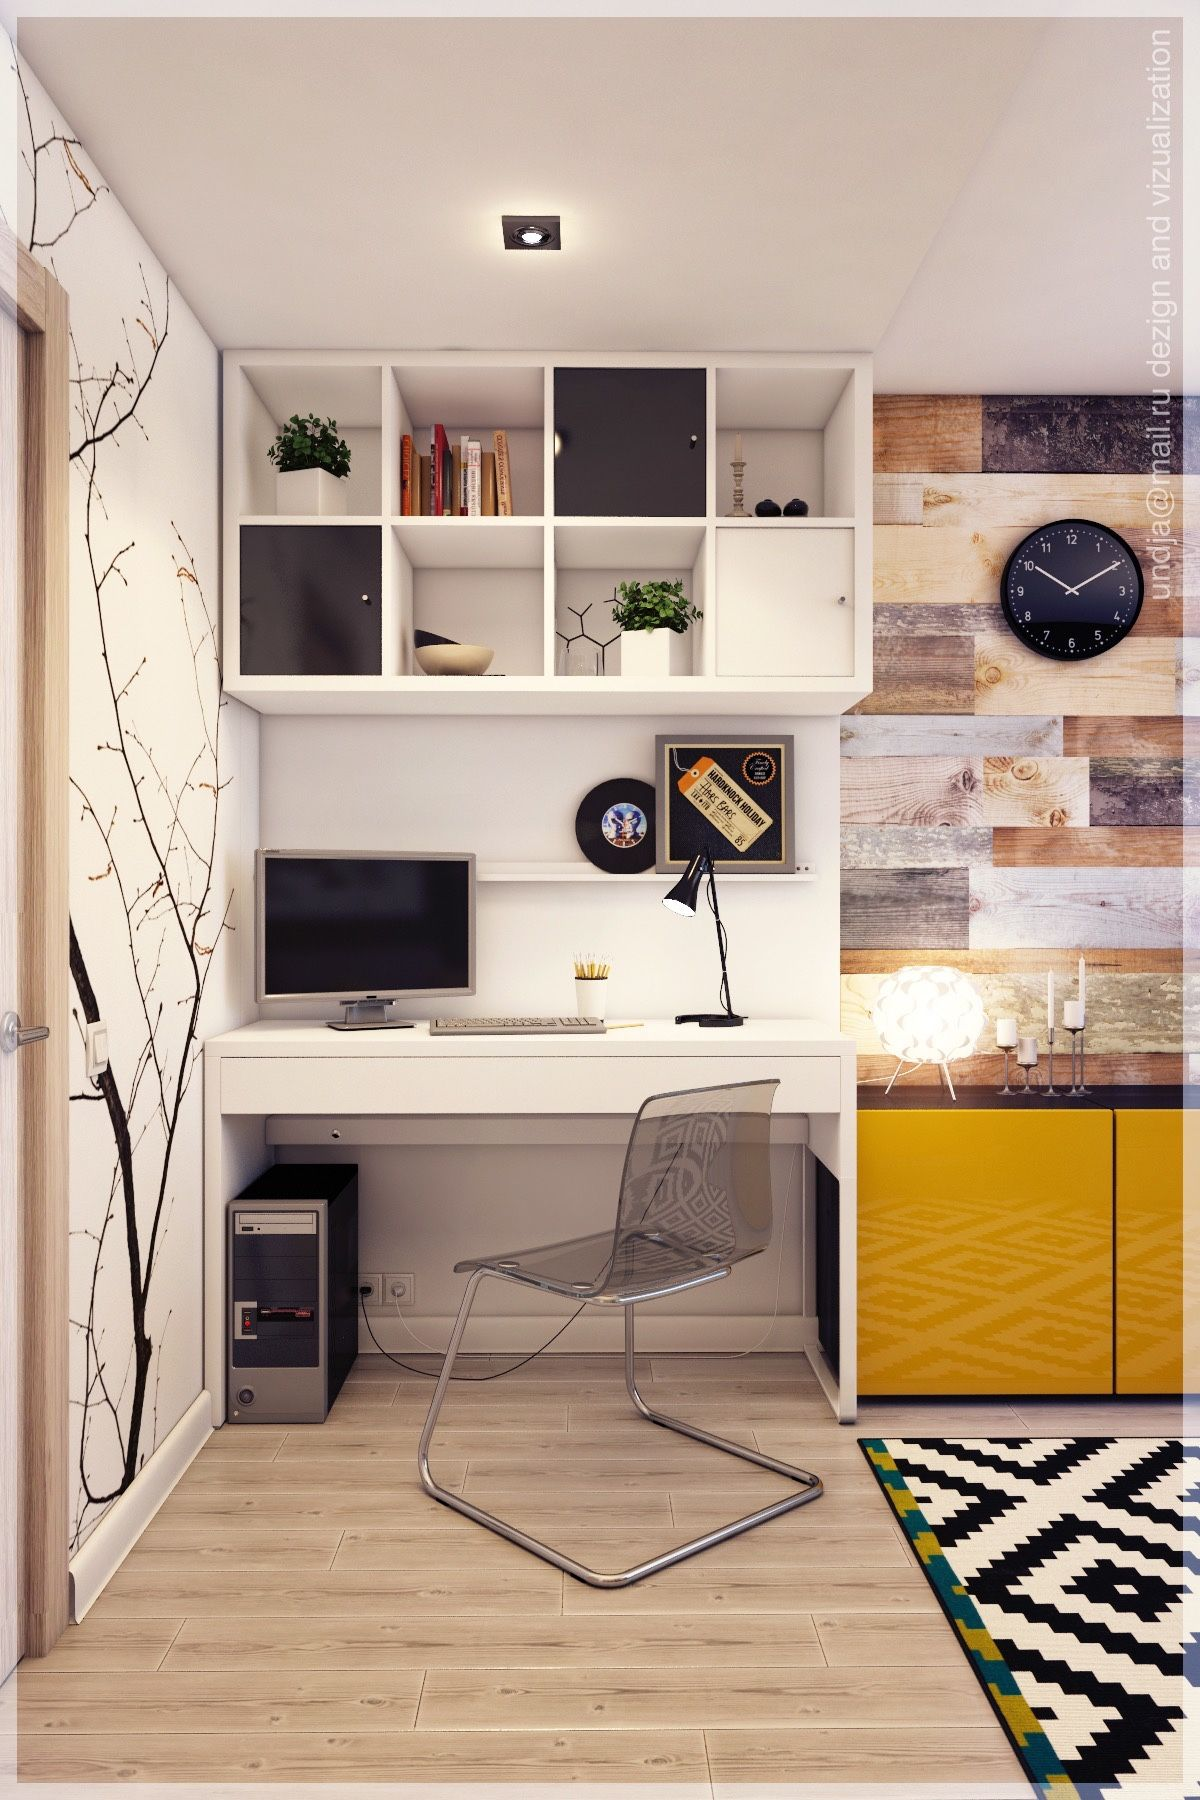 20 id es pour agencer et d corer un bureau moodboards pinterest bureau avec tag re. Black Bedroom Furniture Sets. Home Design Ideas